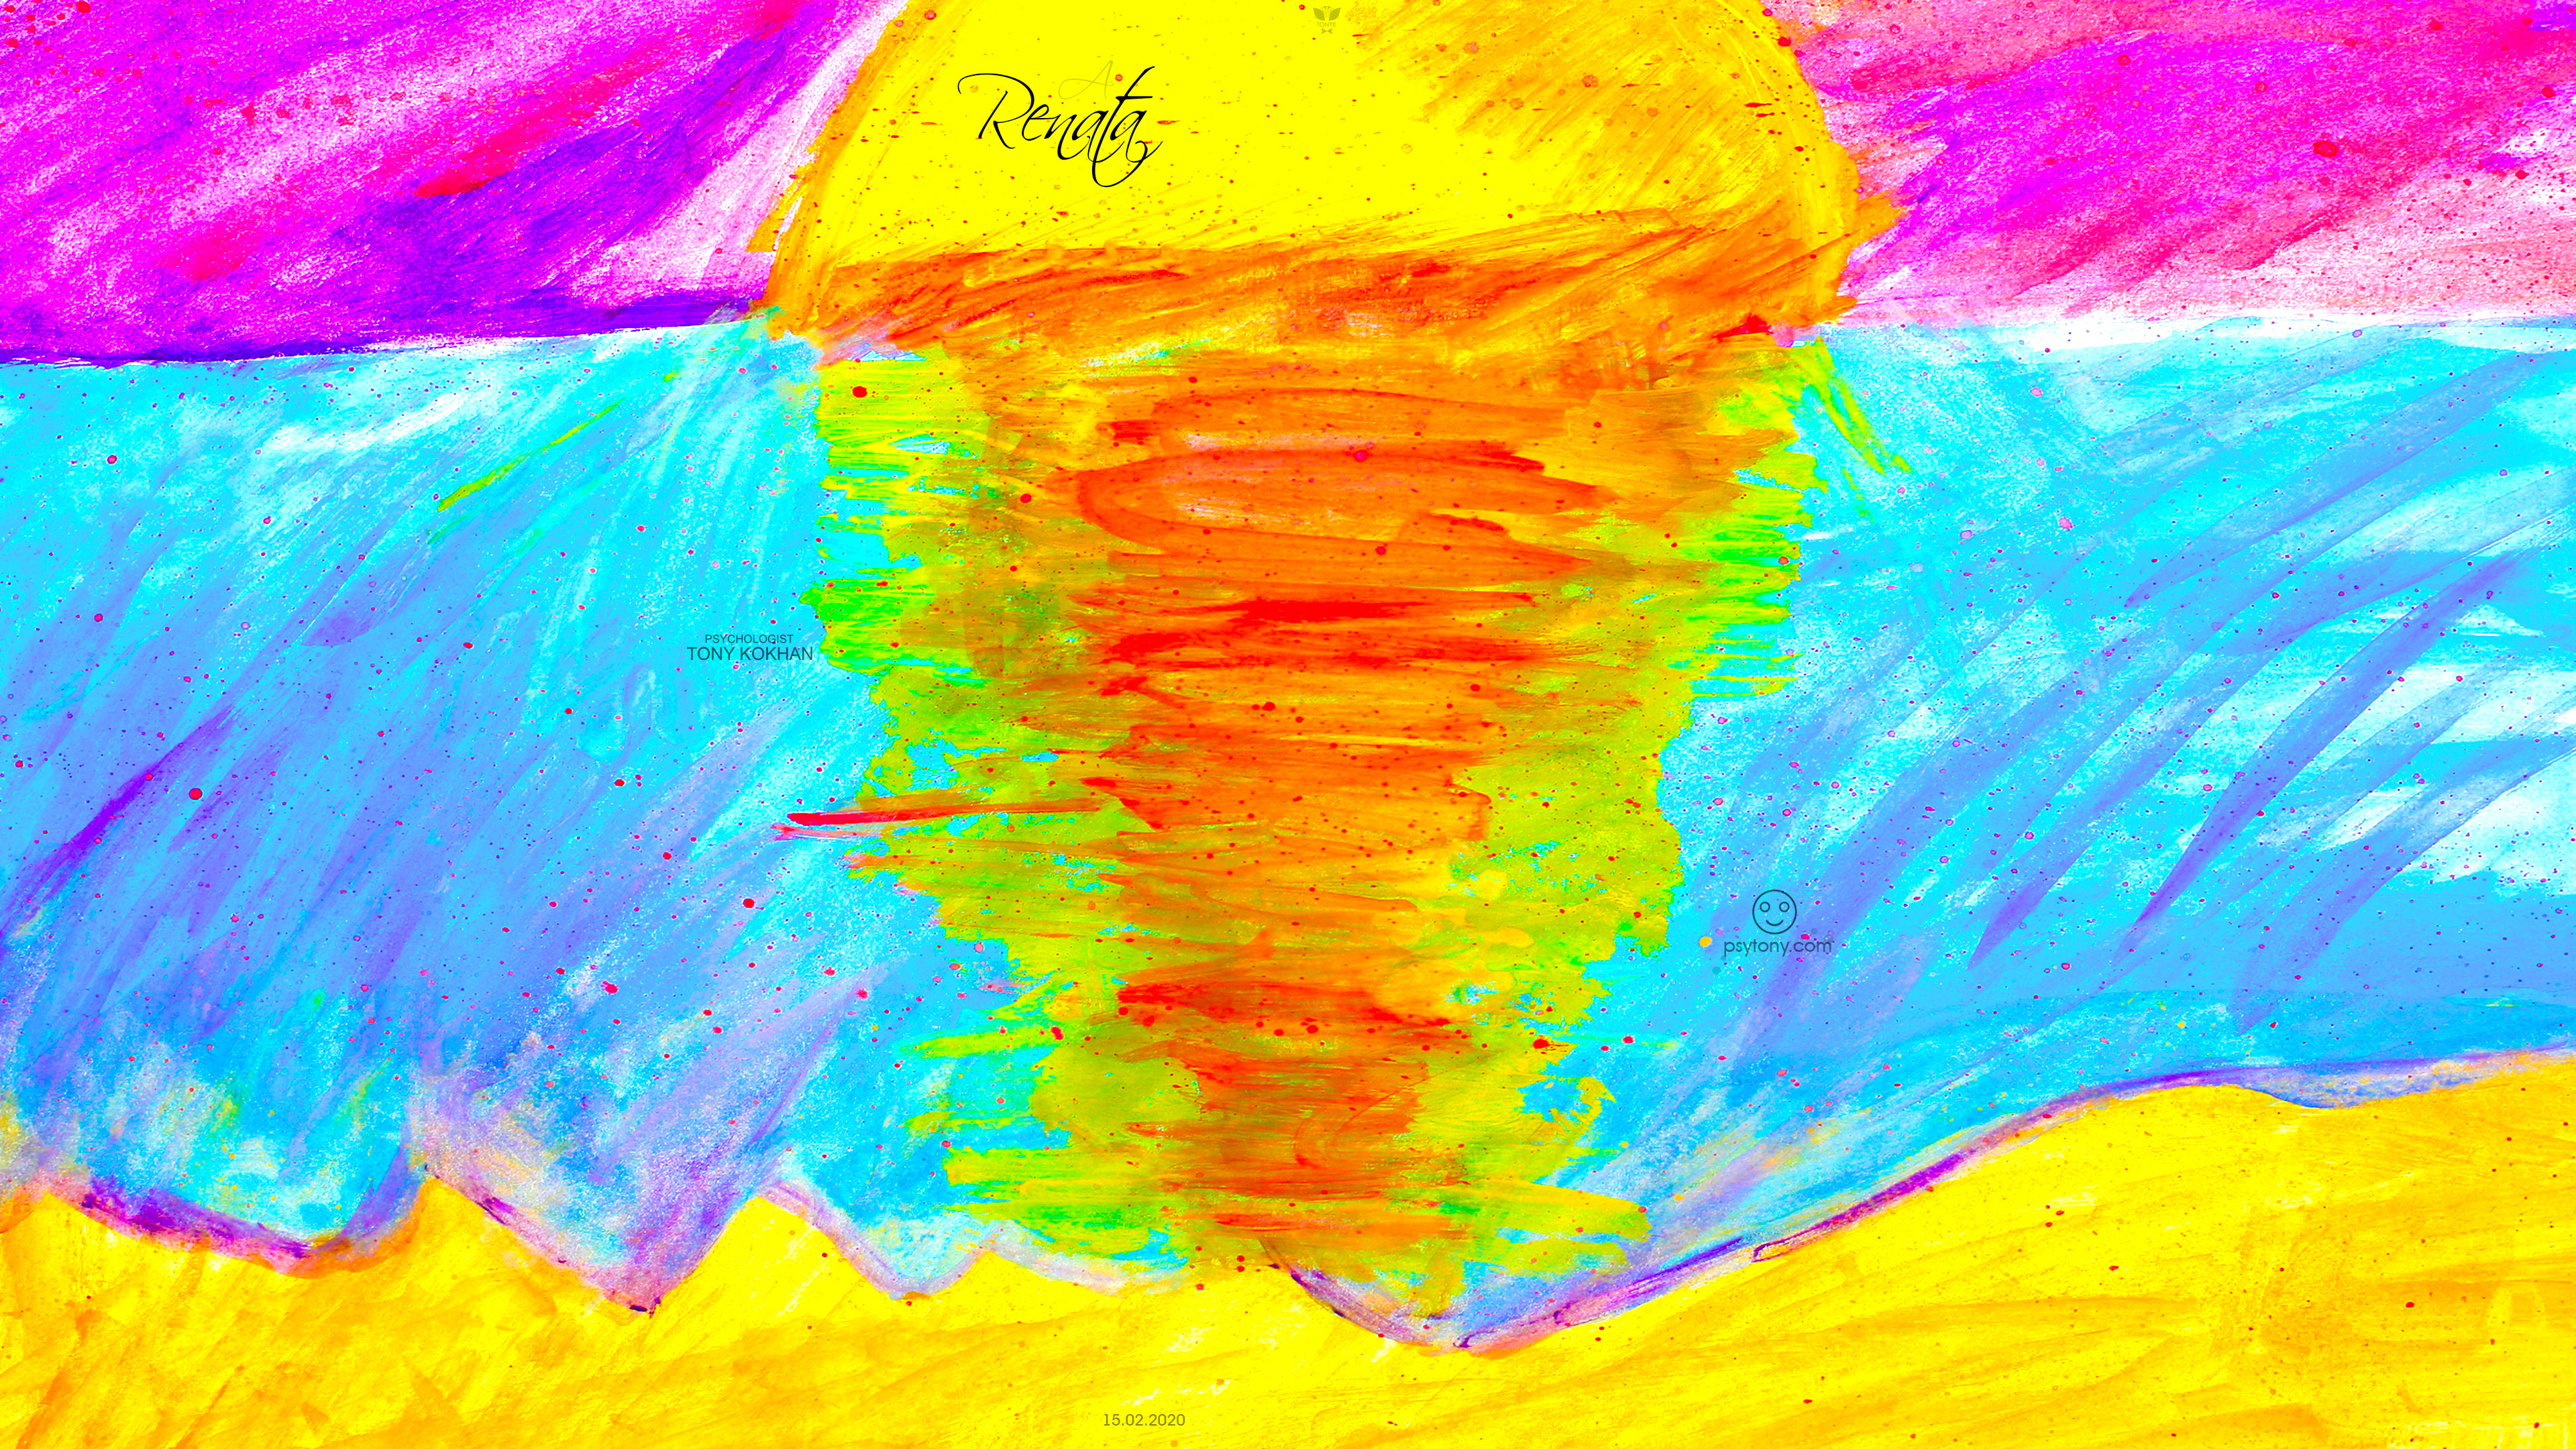 Renata-Soul-Girl-Sun-Sunset-Blood-Distortion-Inside-Deep-Reflection-Sand-Mountains-Gouache-Picture-Art-2020-Multicolors-4K-Wallpapers-by-Psychologist-Tony-Kokhan-www.psytony.com-image